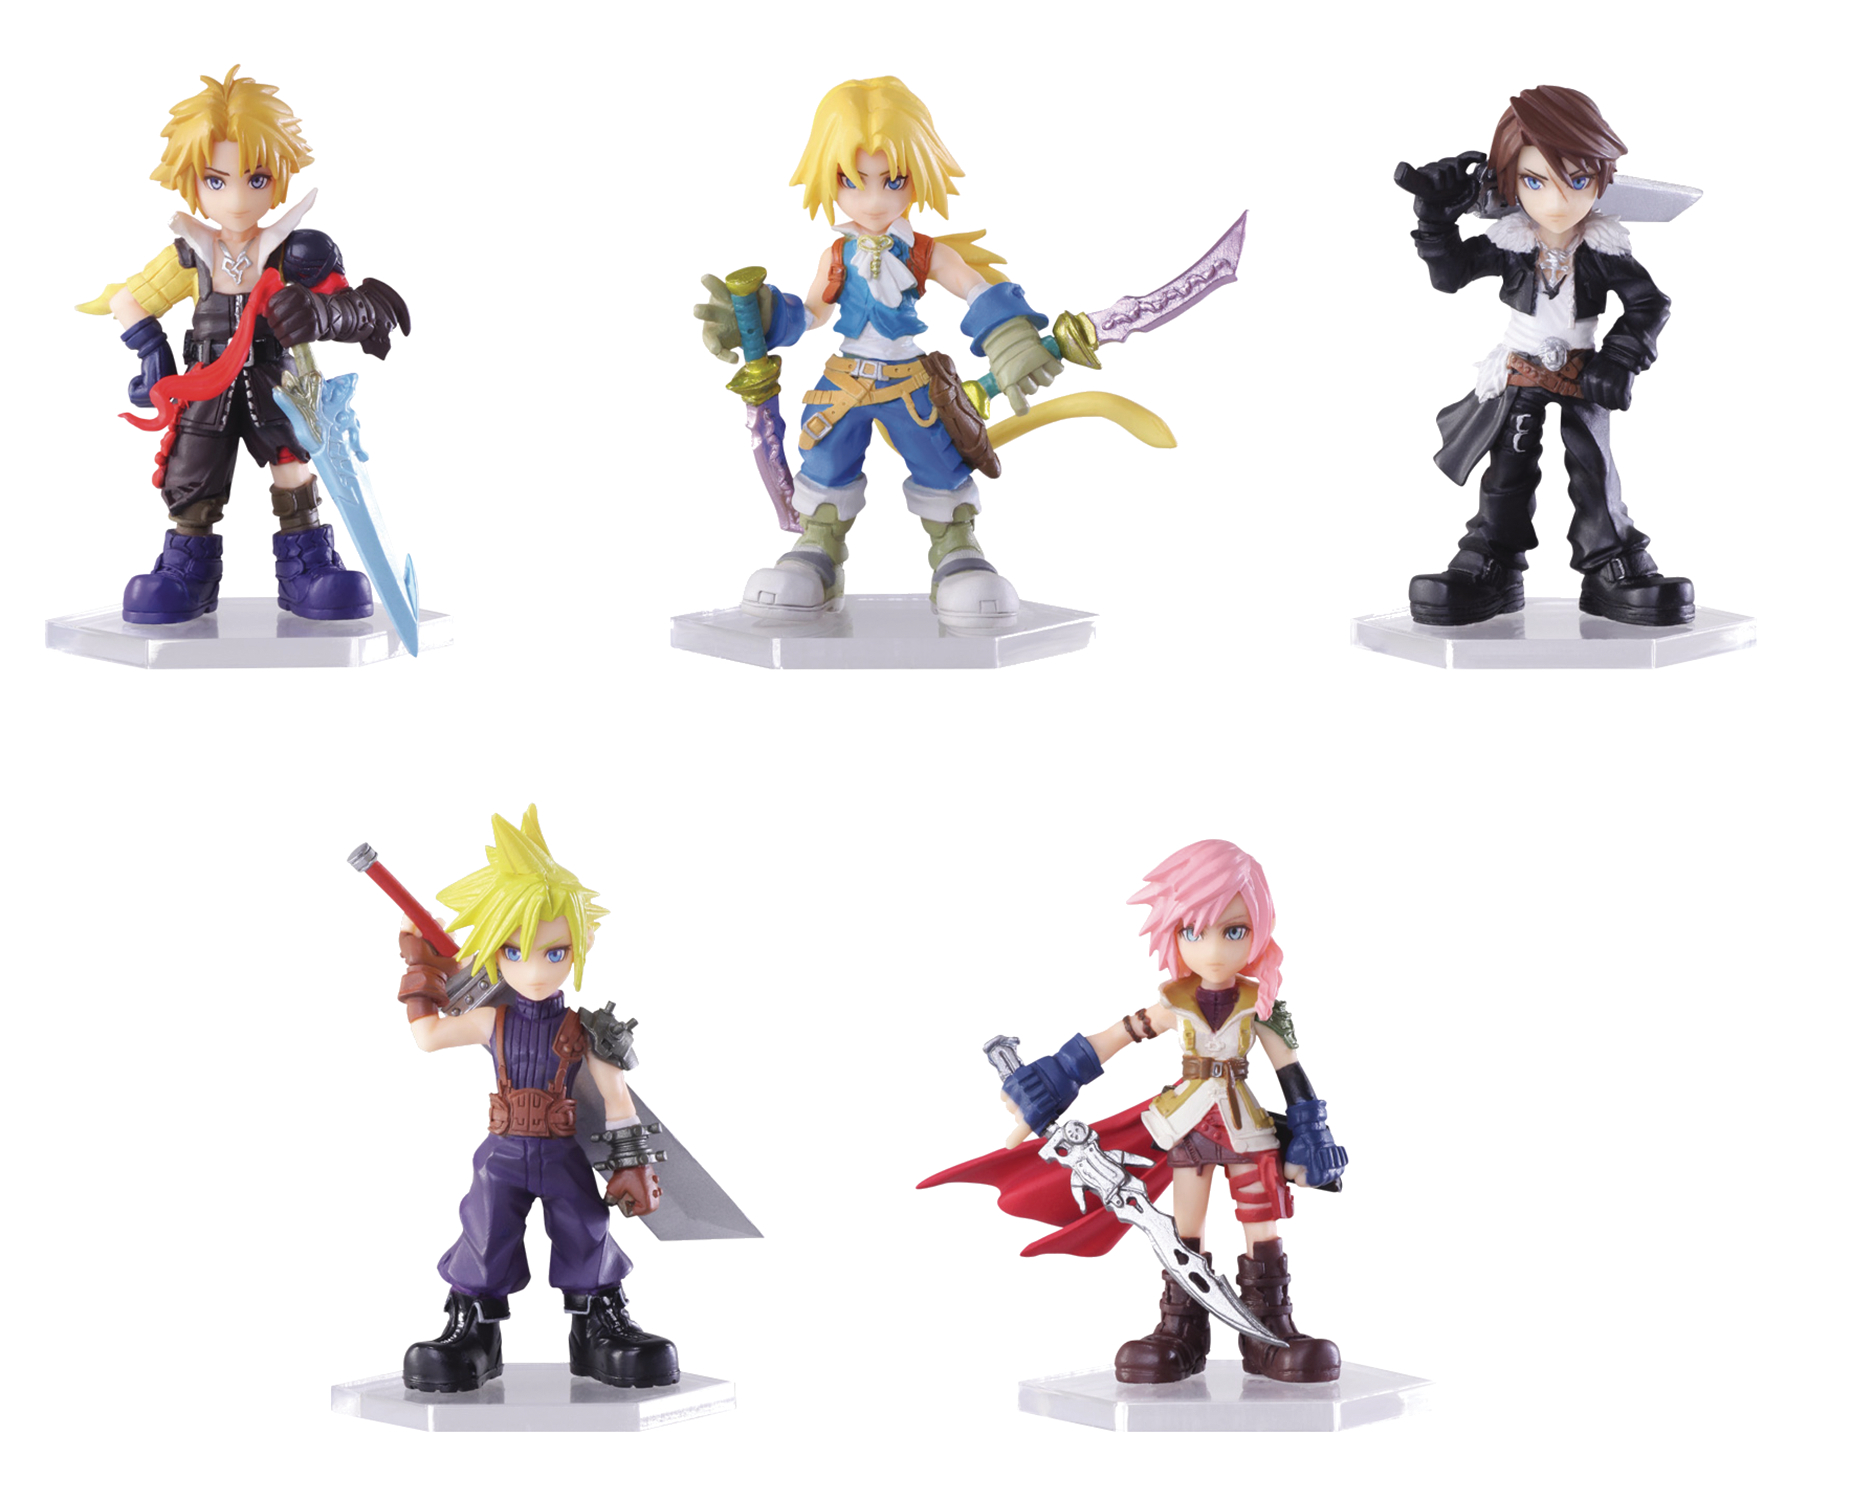 DISSIDIA FINAL FANTASY TRADING ARTS MINI FIG 10PC BMB DIS (O